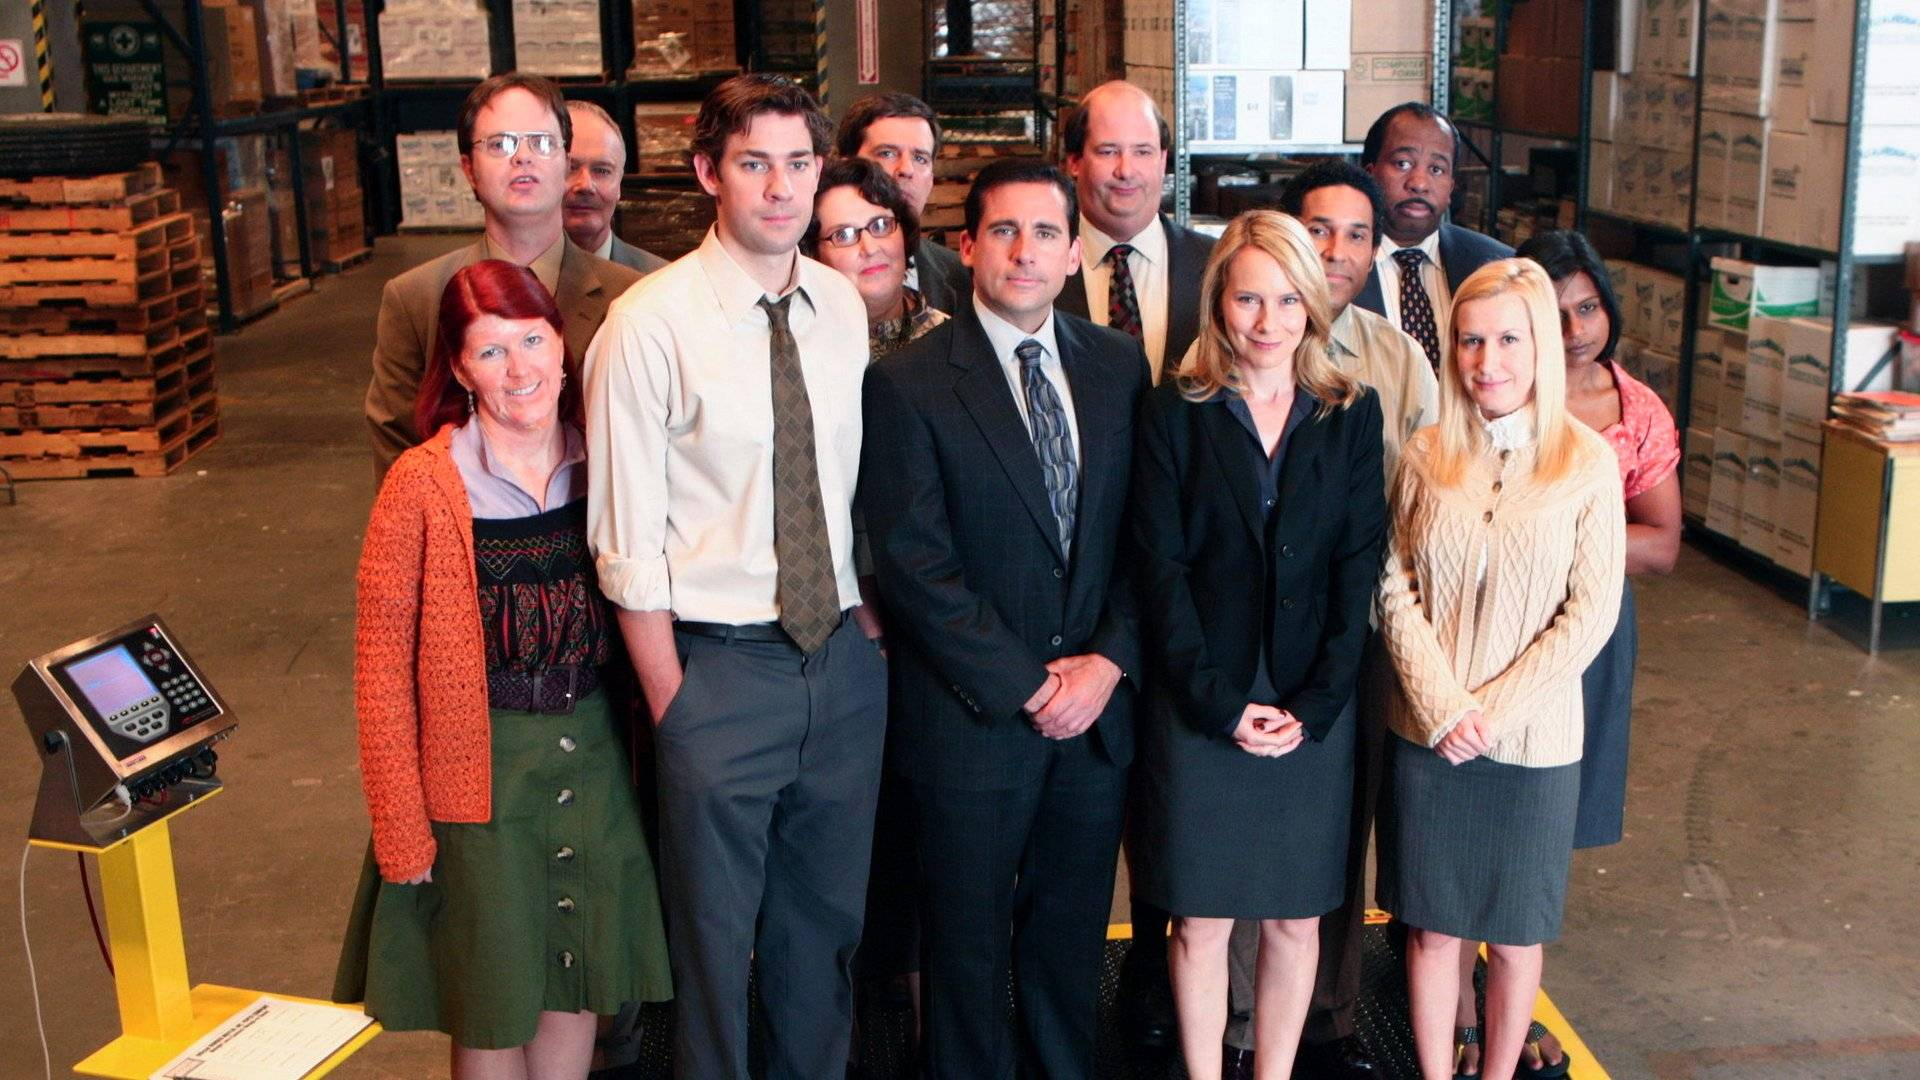 the office cast wallpaper 68630